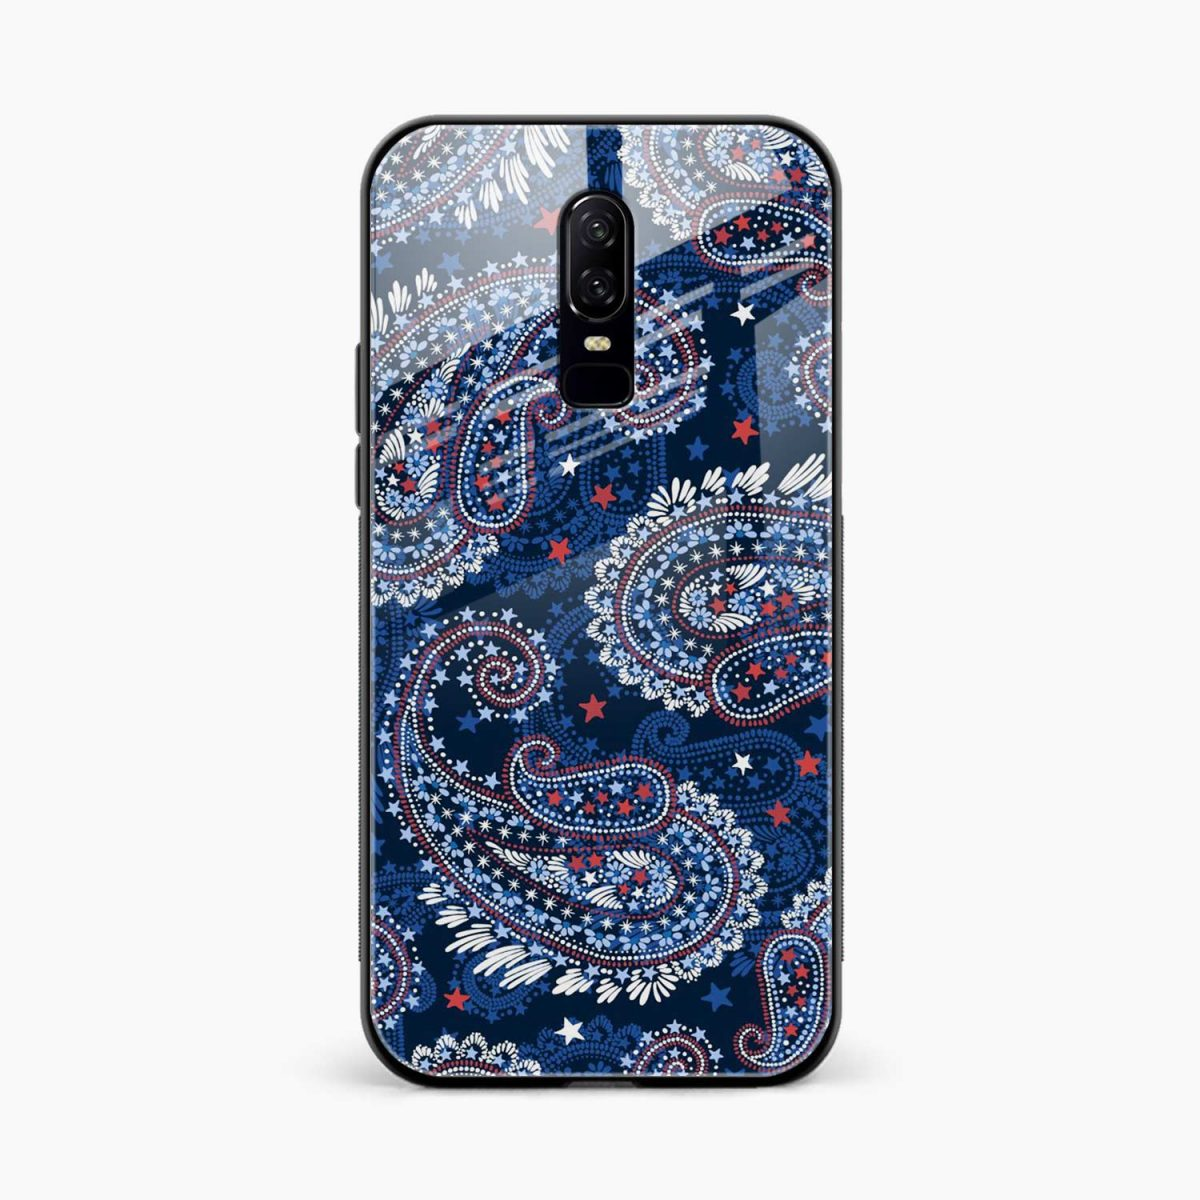 fblue colored classical pattern ront view oneplus 6 back cover